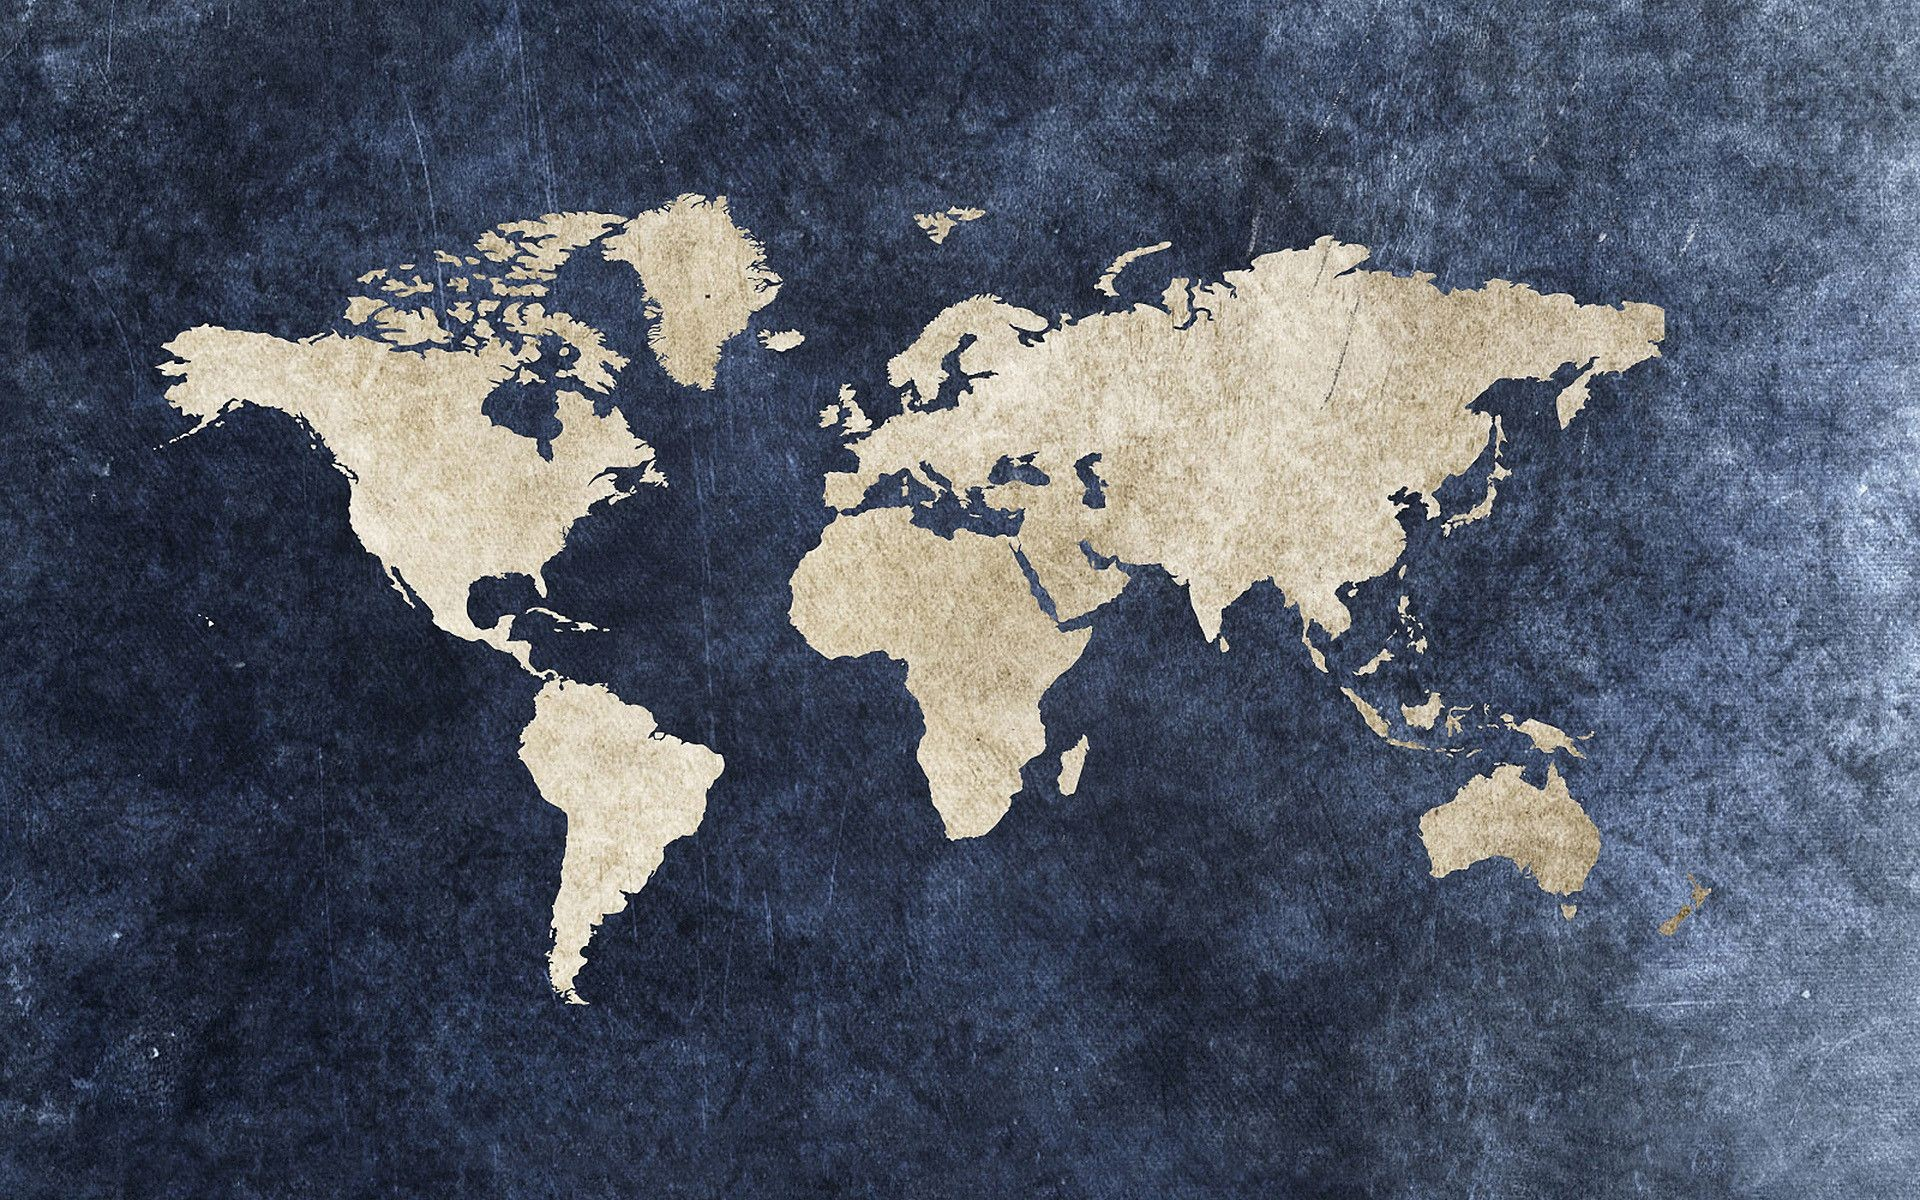 World map wallpaper download free amazing backgrounds for full gumiabroncs